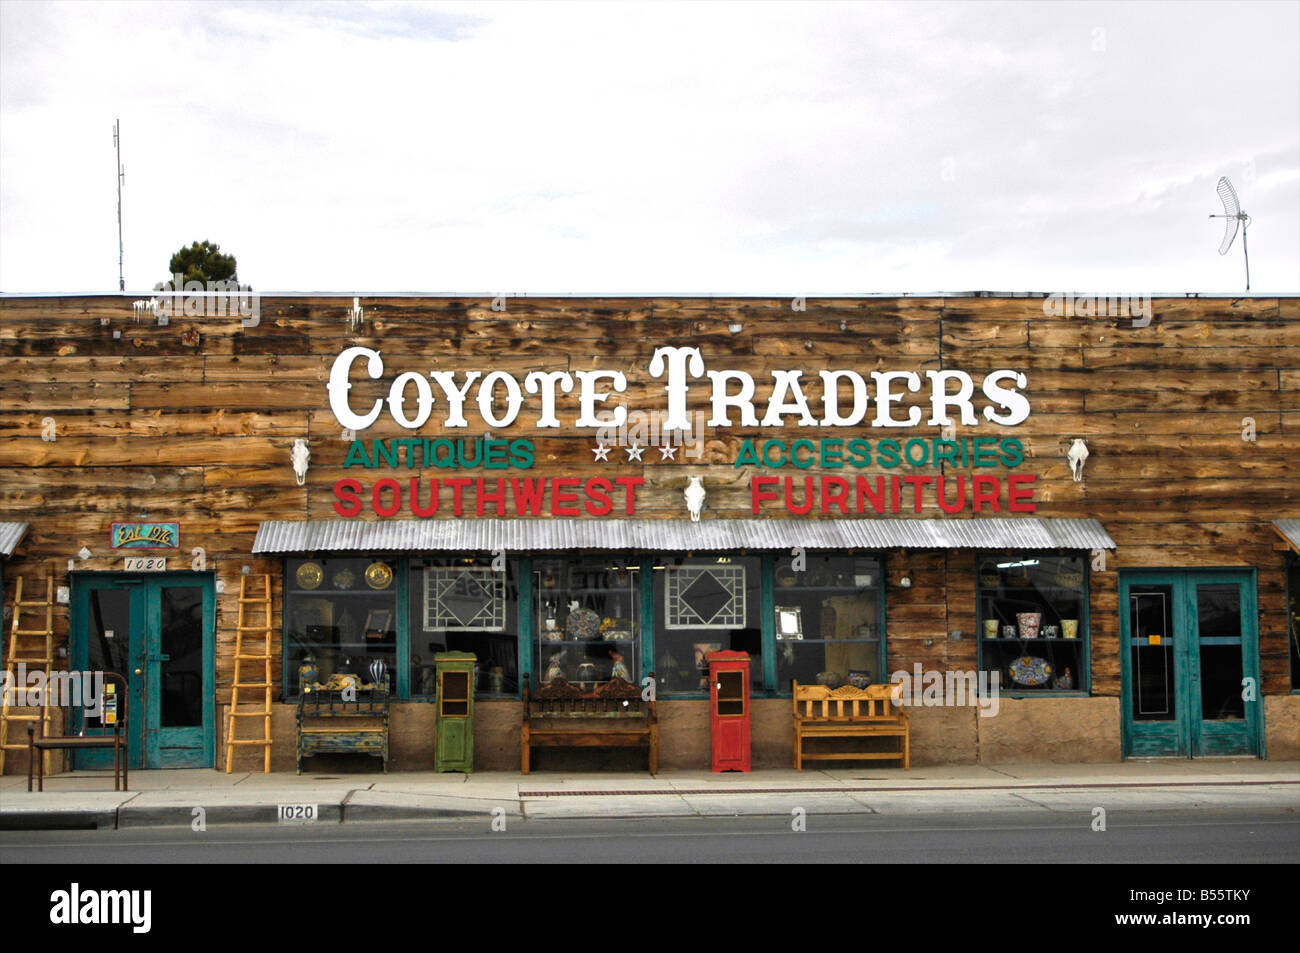 Coyote Traders, Mexican Styled Furniture Store In Las Cruces, New Mexico